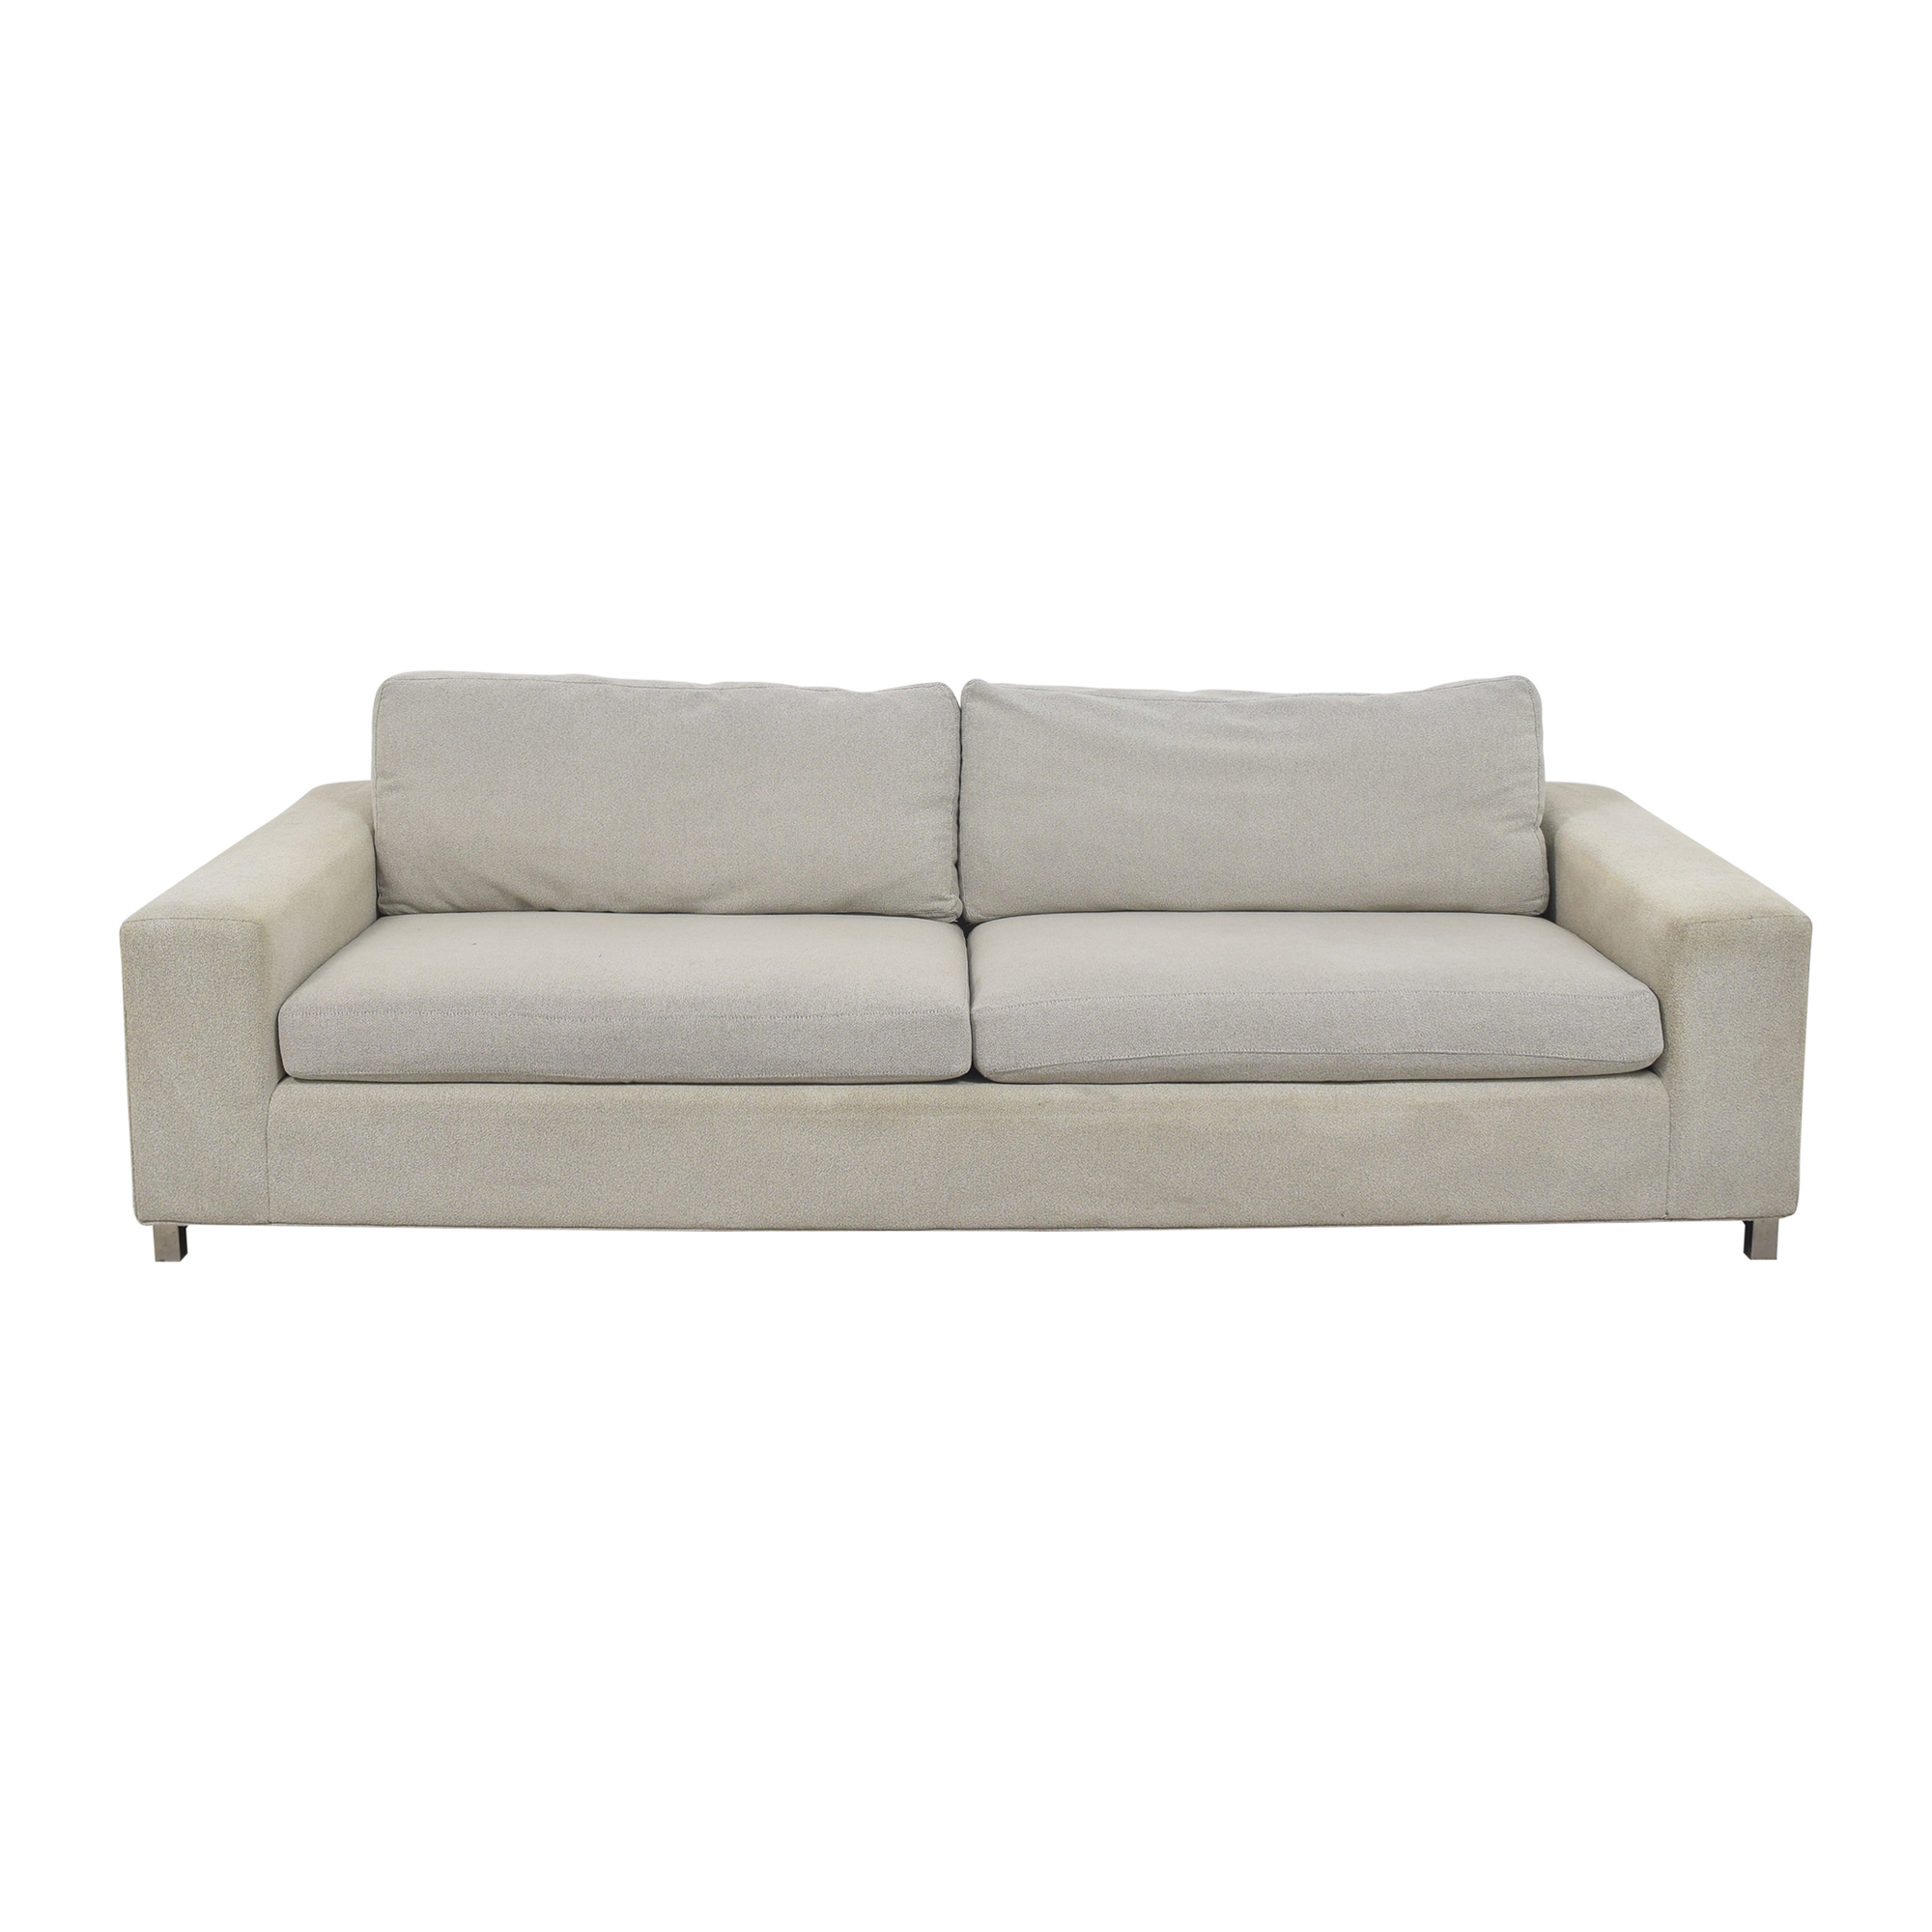 Room & Board Room & Board Metro Sofa on sale